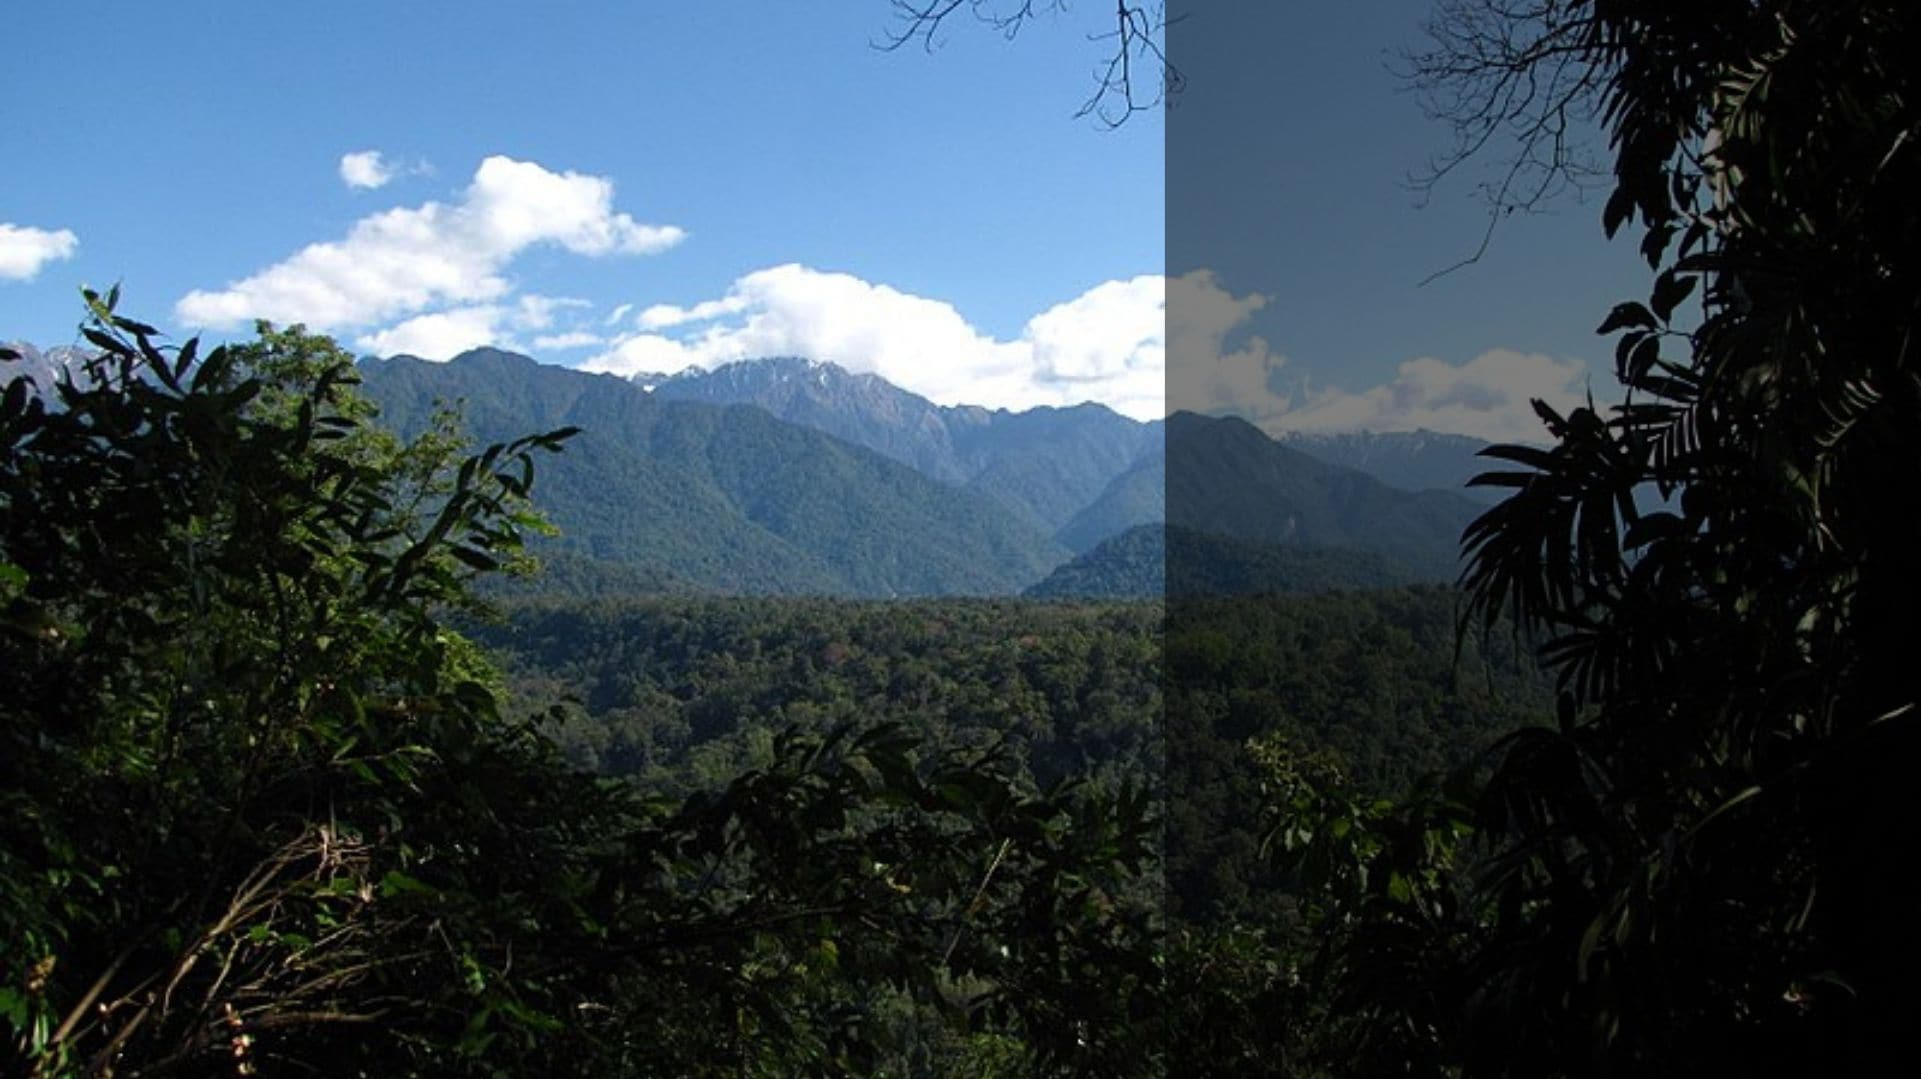 Climate change: Indian forests resilient to large shifts in rainfall, new study suggests